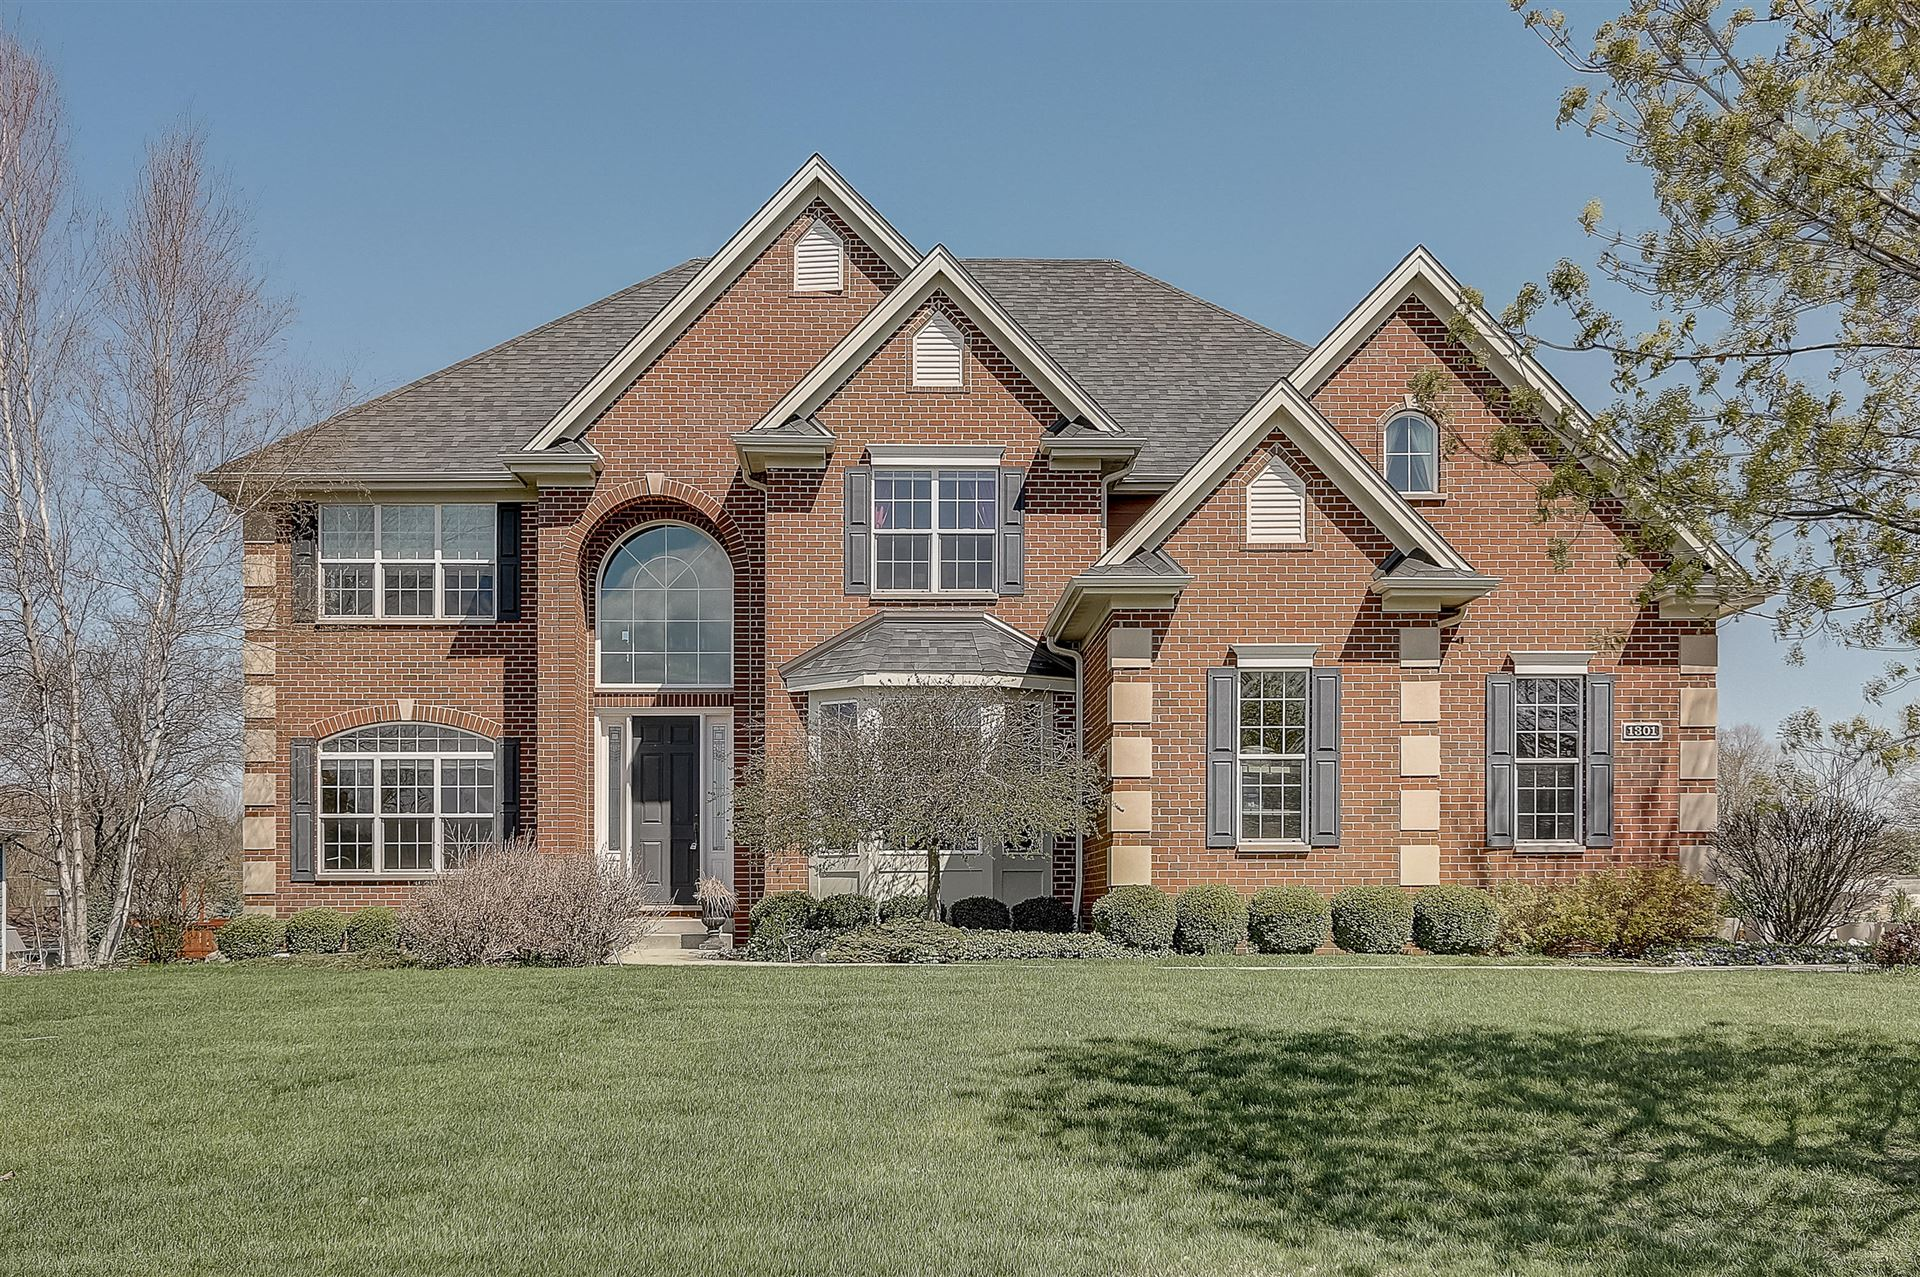 1301 53rd Ave, Somers, WI 53144 - #: 1688863